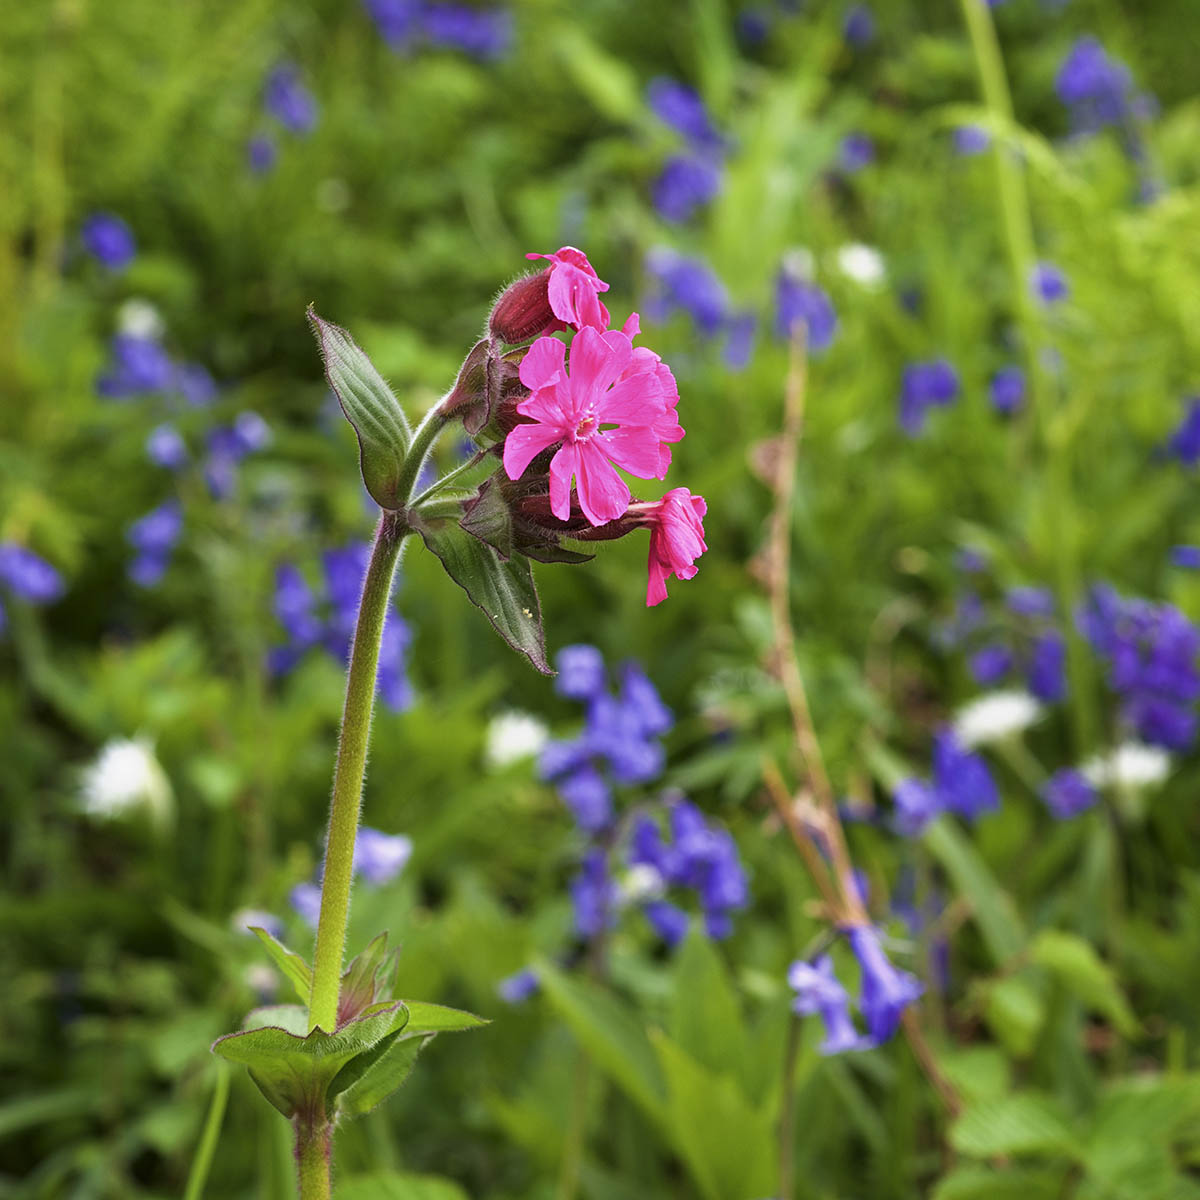 Treshnish, Mull, self-catering cottages, red campion